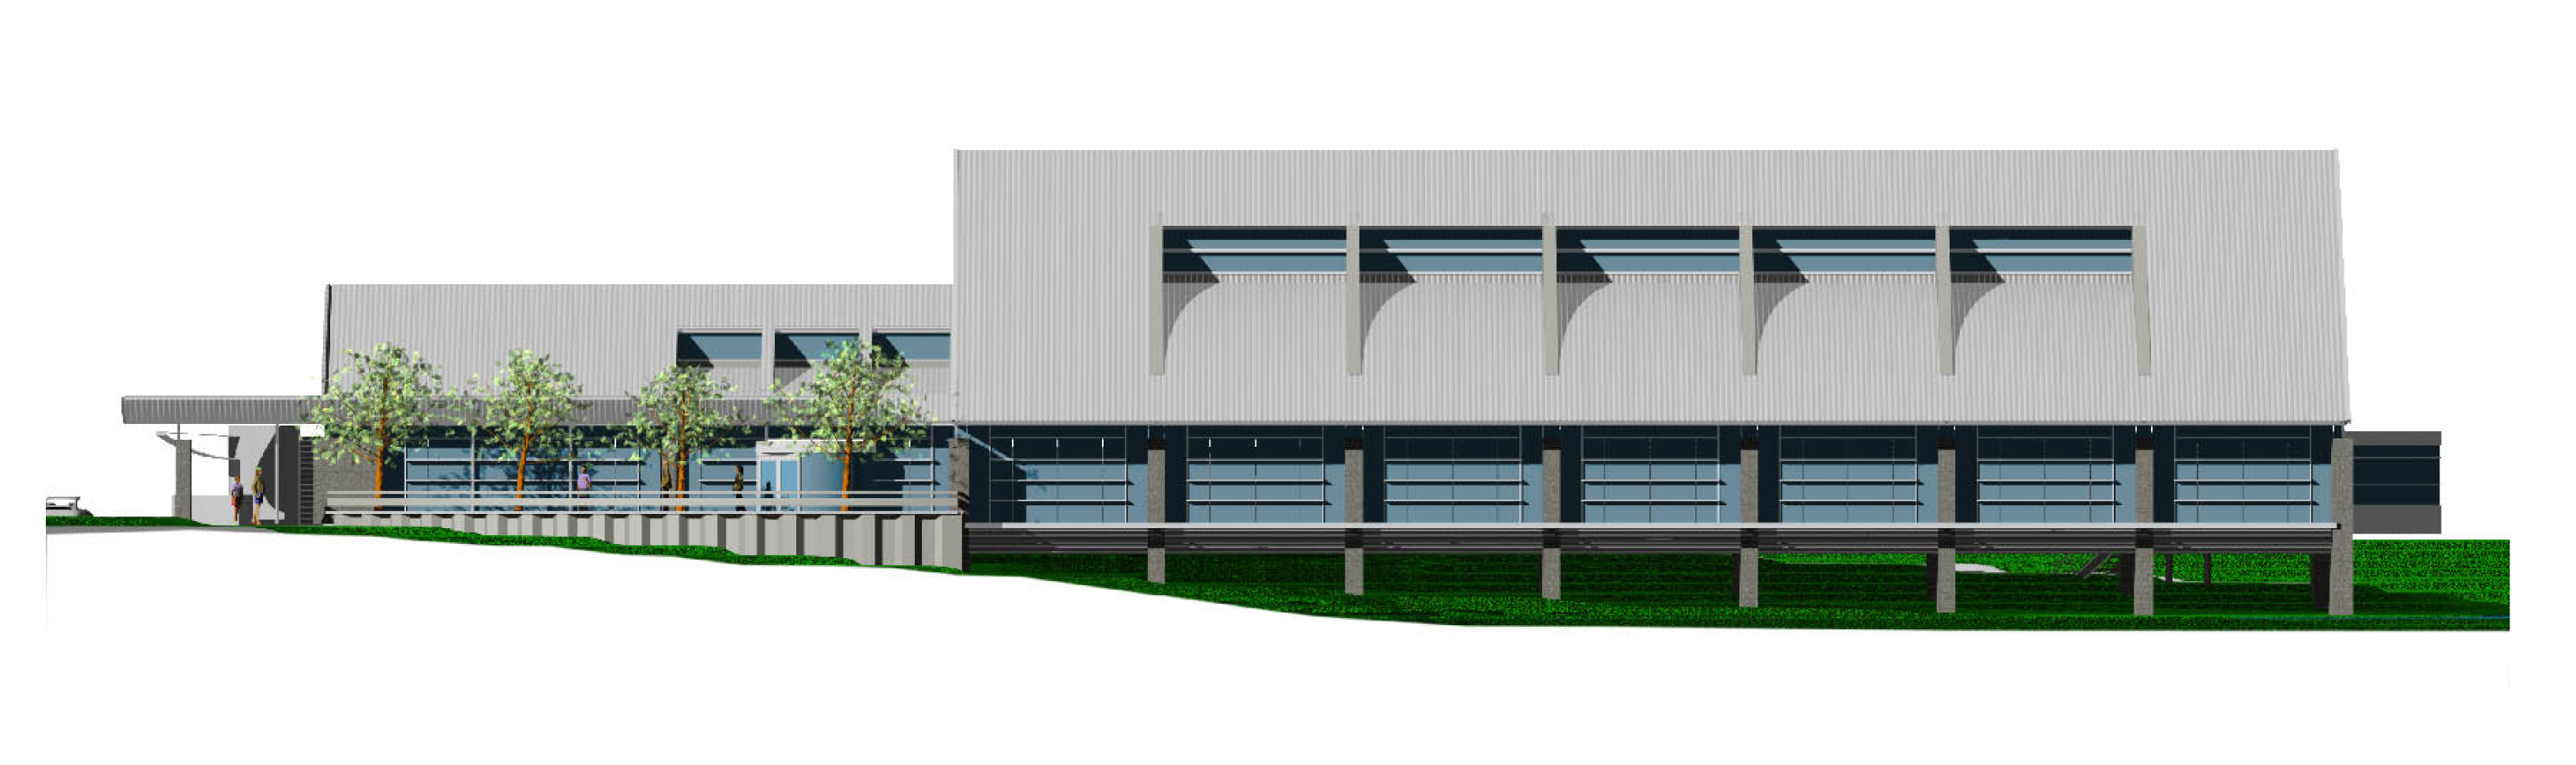 Commercial Building Elevation Drawing : Elevation drawing ann arbor district library